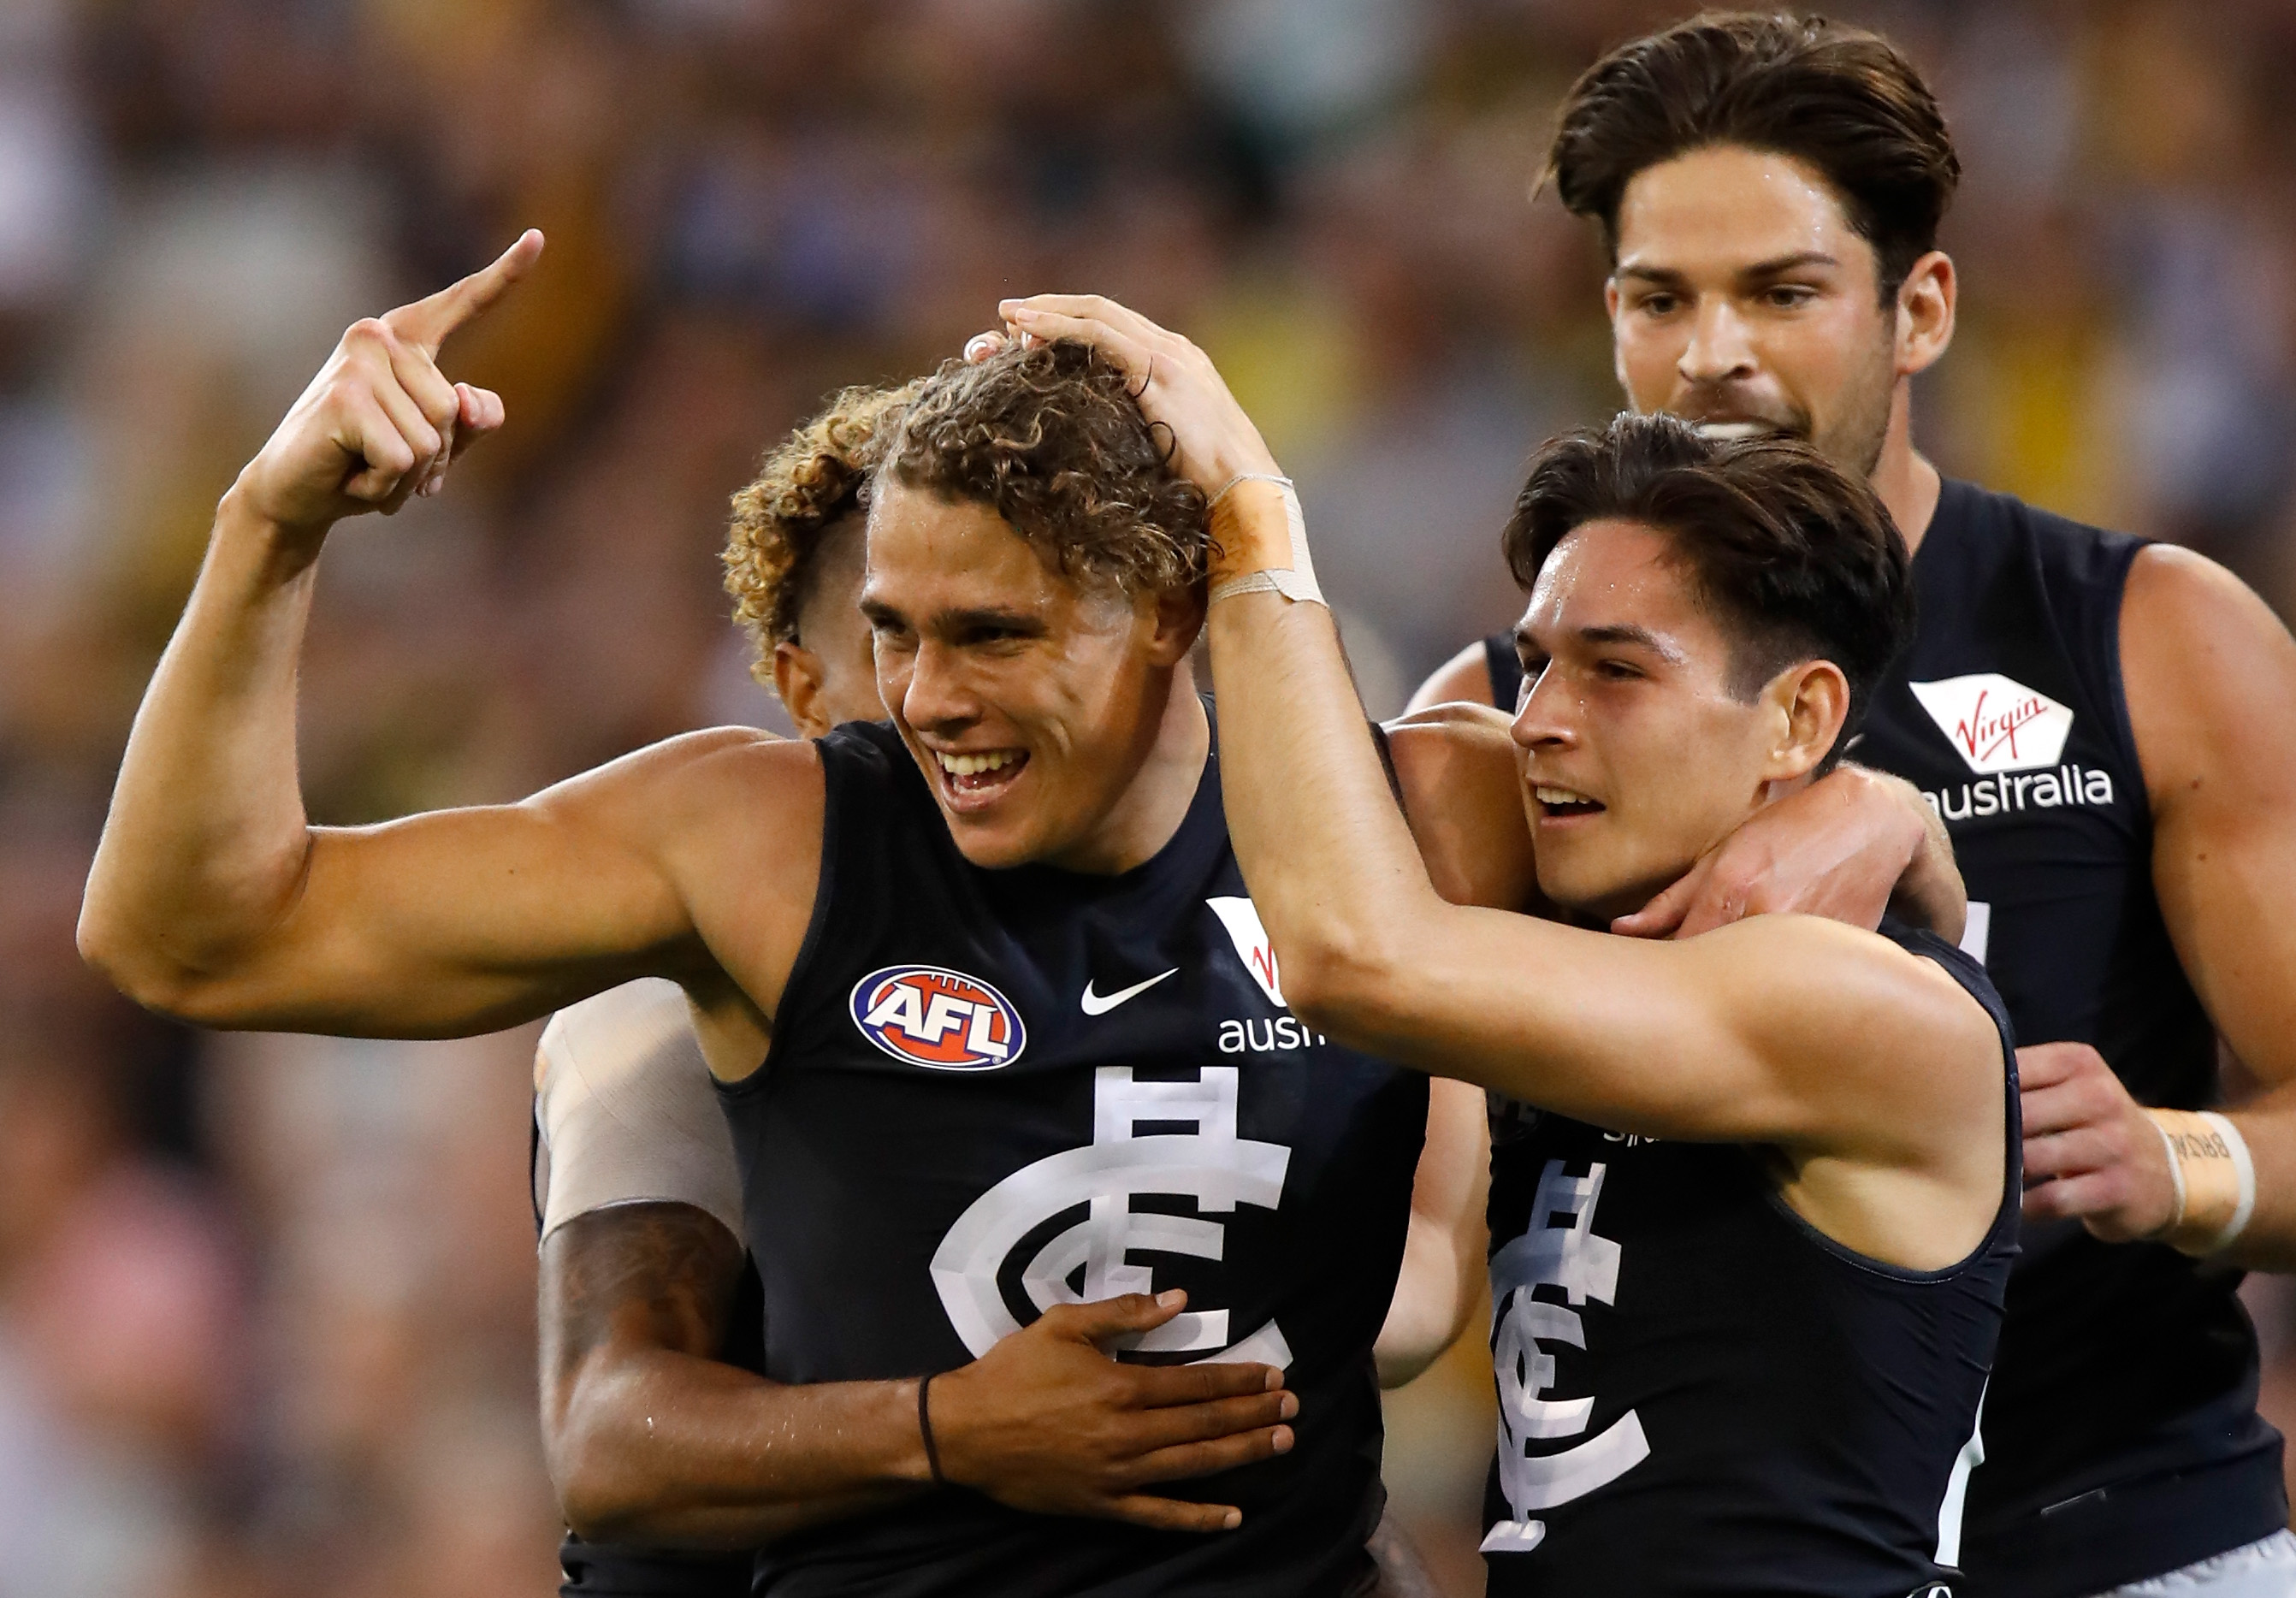 Charlie Curnow celebrates a goal In their round 1 clash against Richmond. Pic: Michael Willson/AFL Media/Getty Images